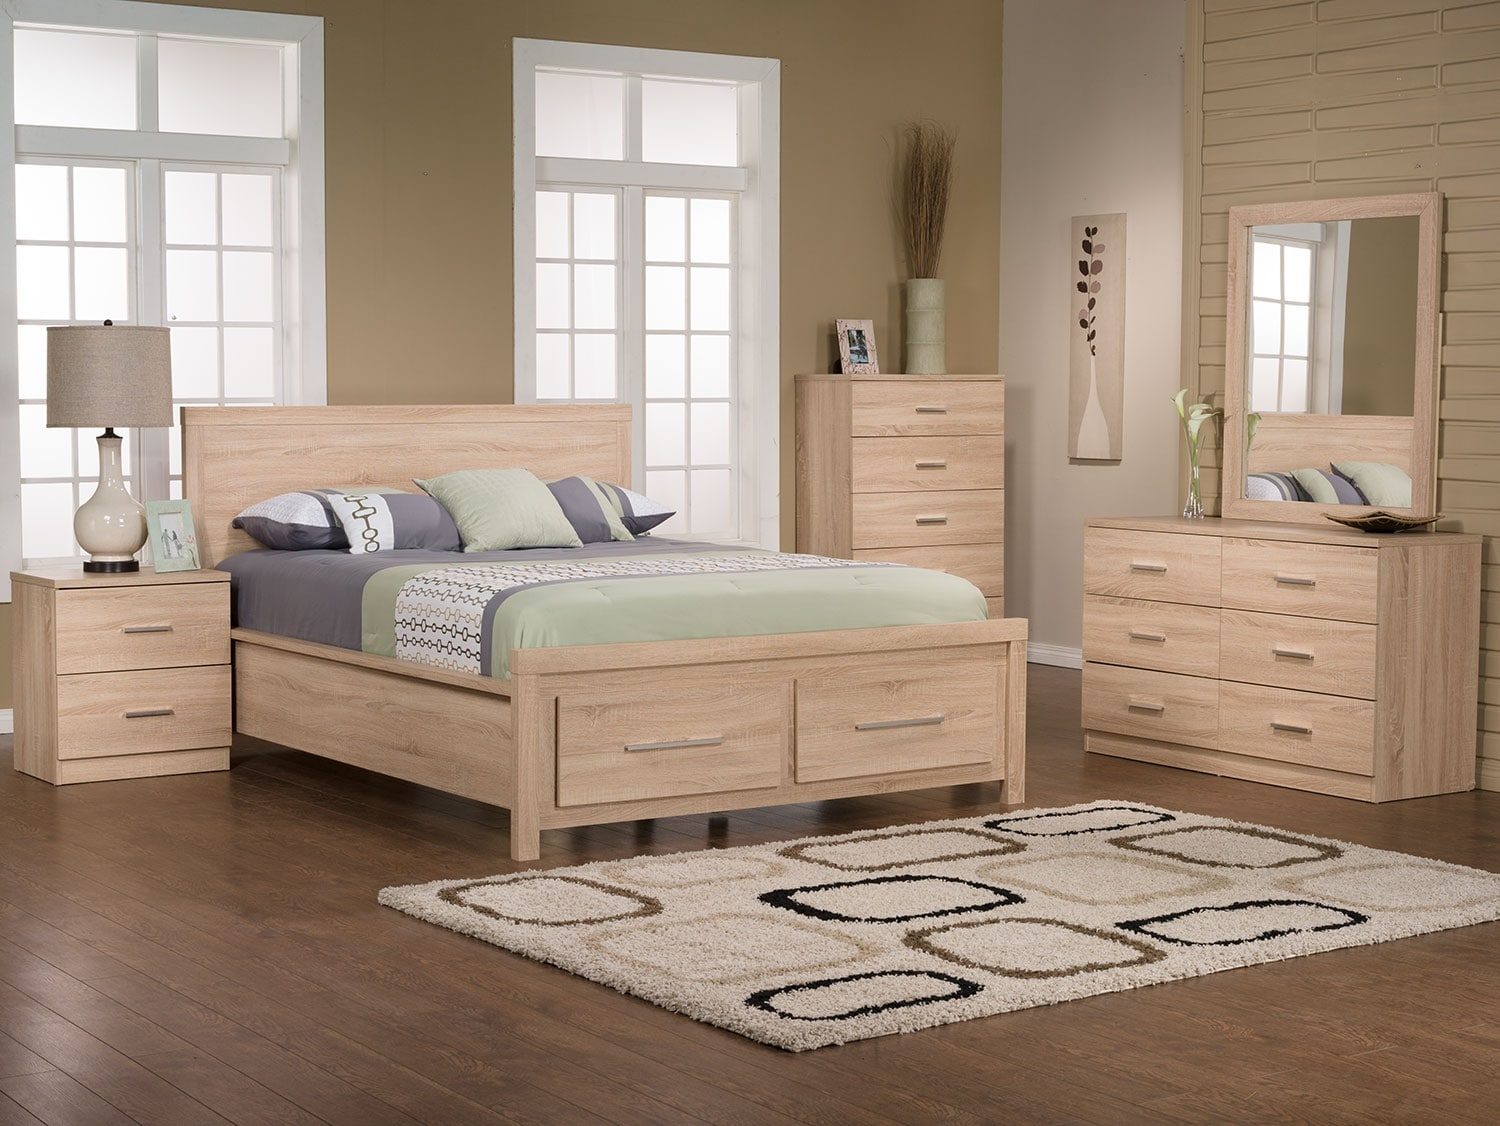 Sierra Queen 5pc Bedroom